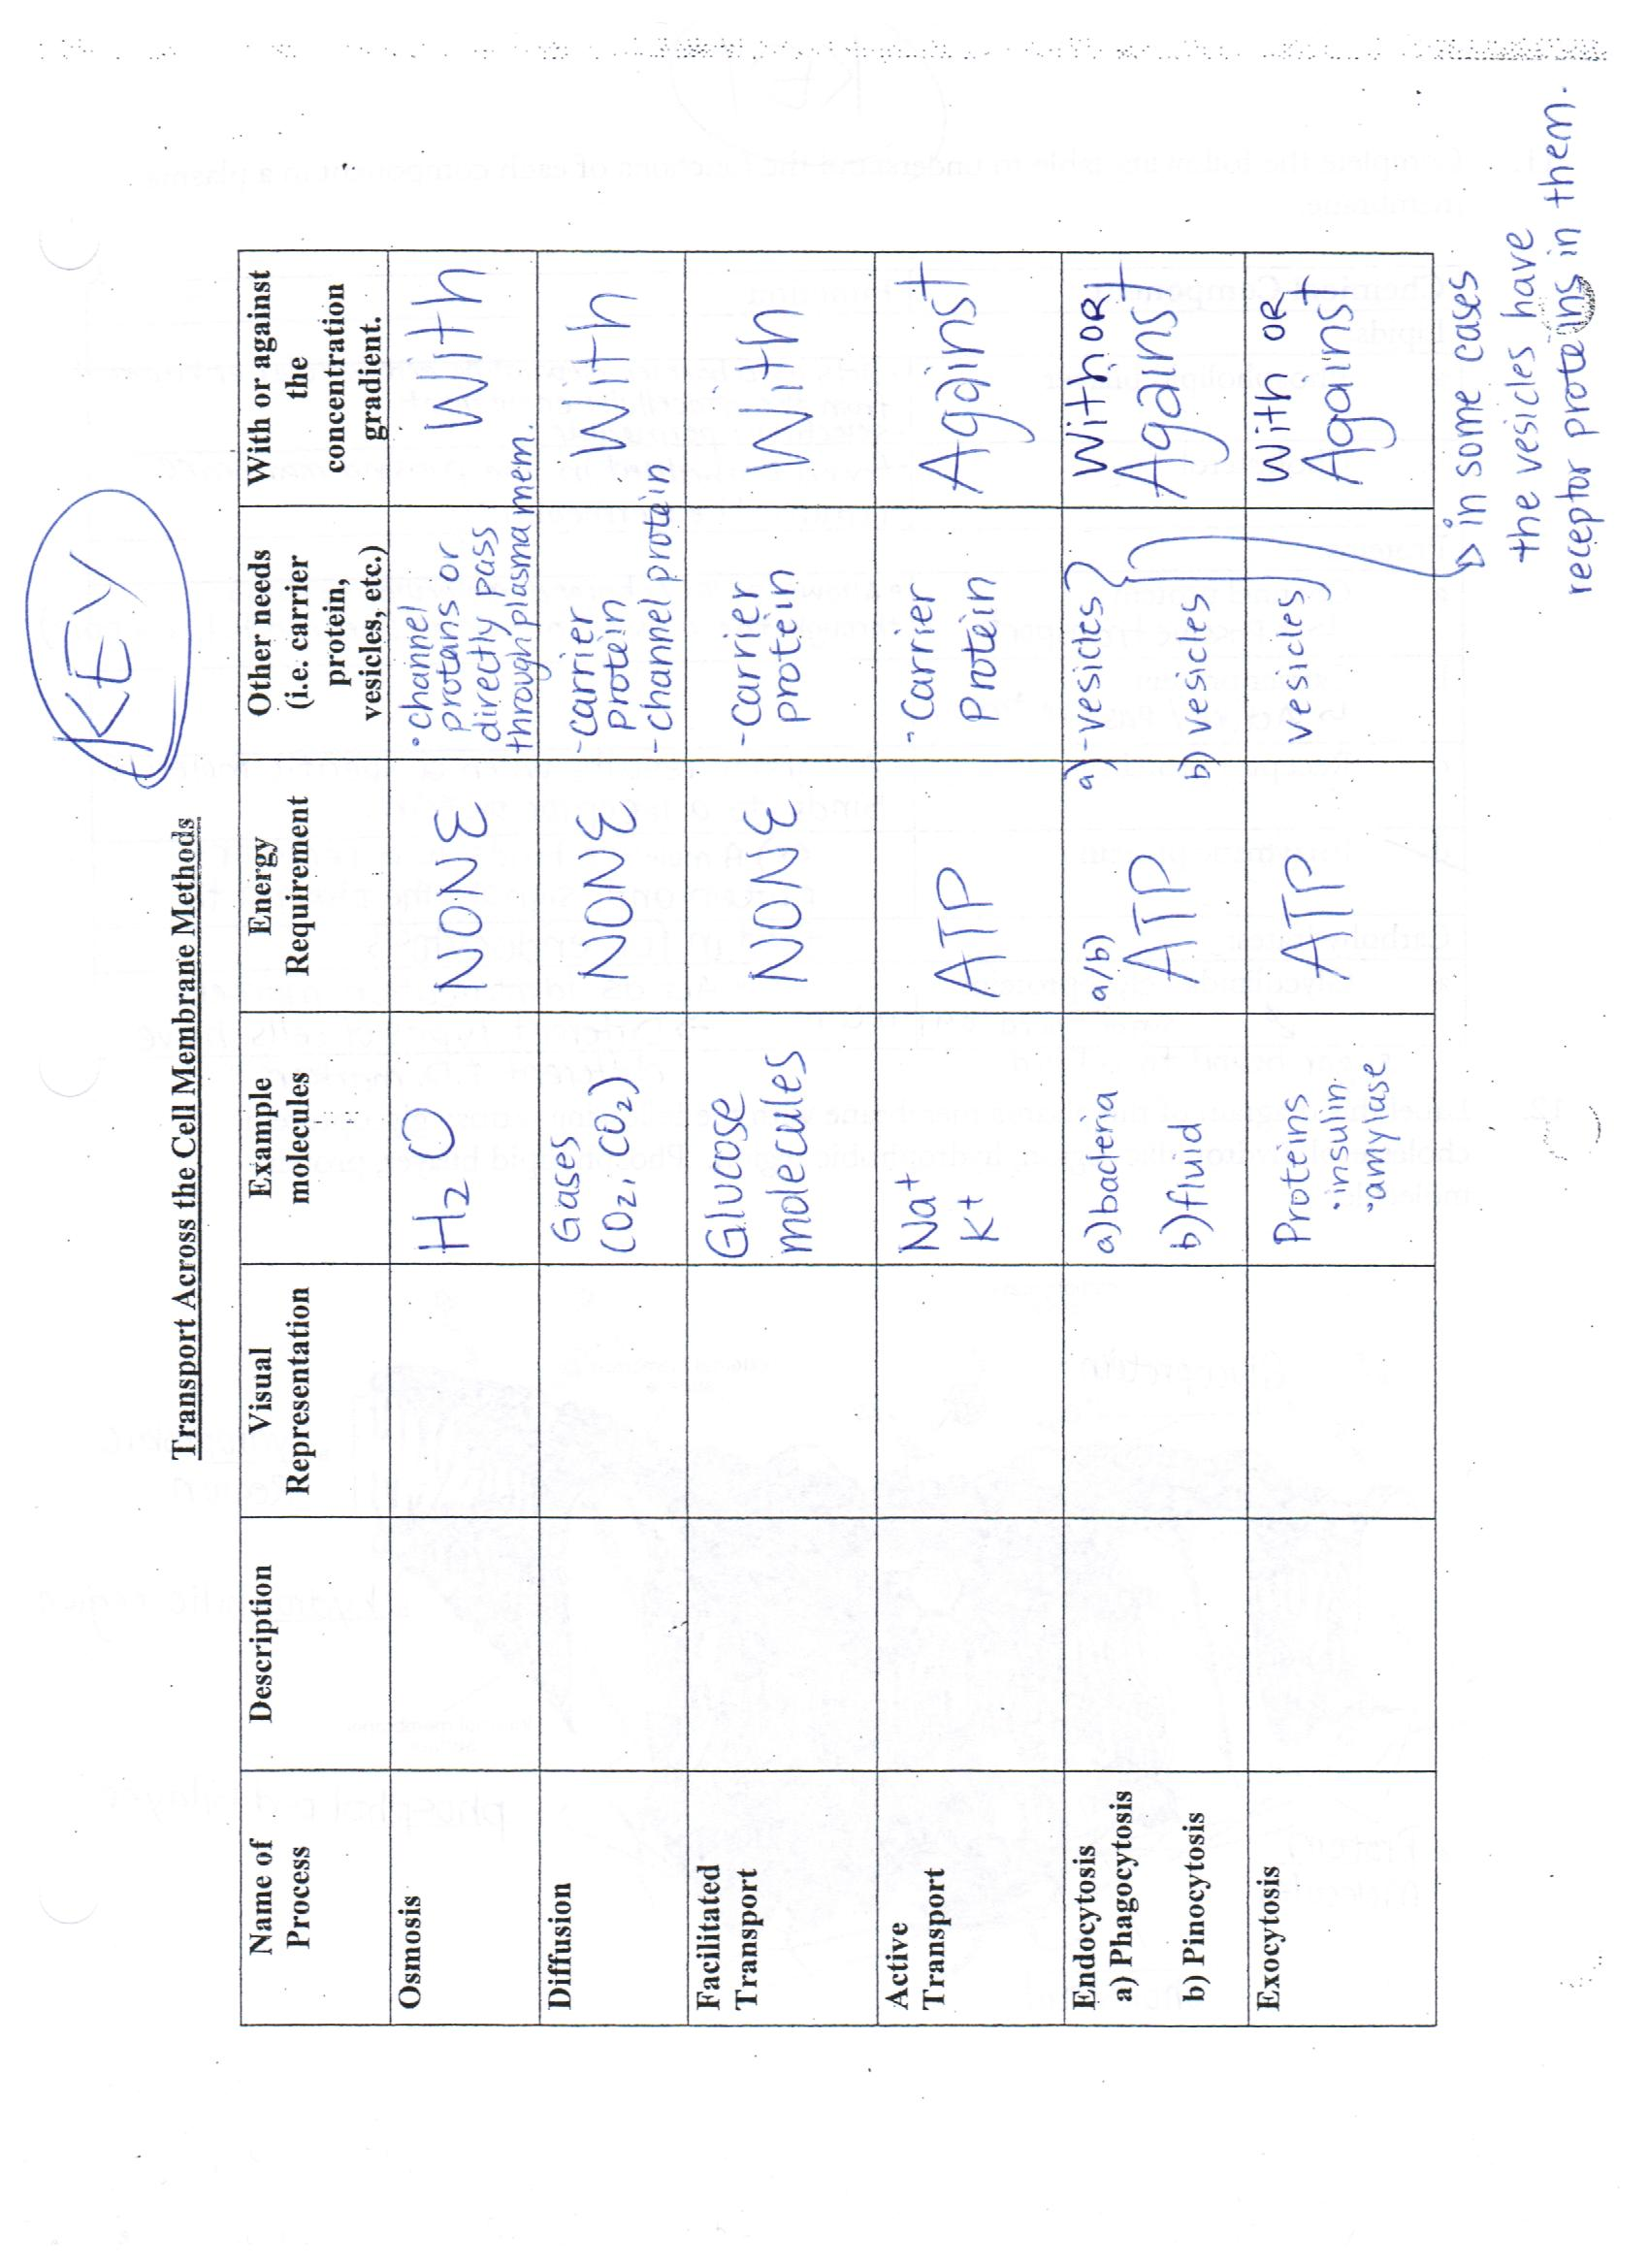 Membrane Transport Worksheet Answers